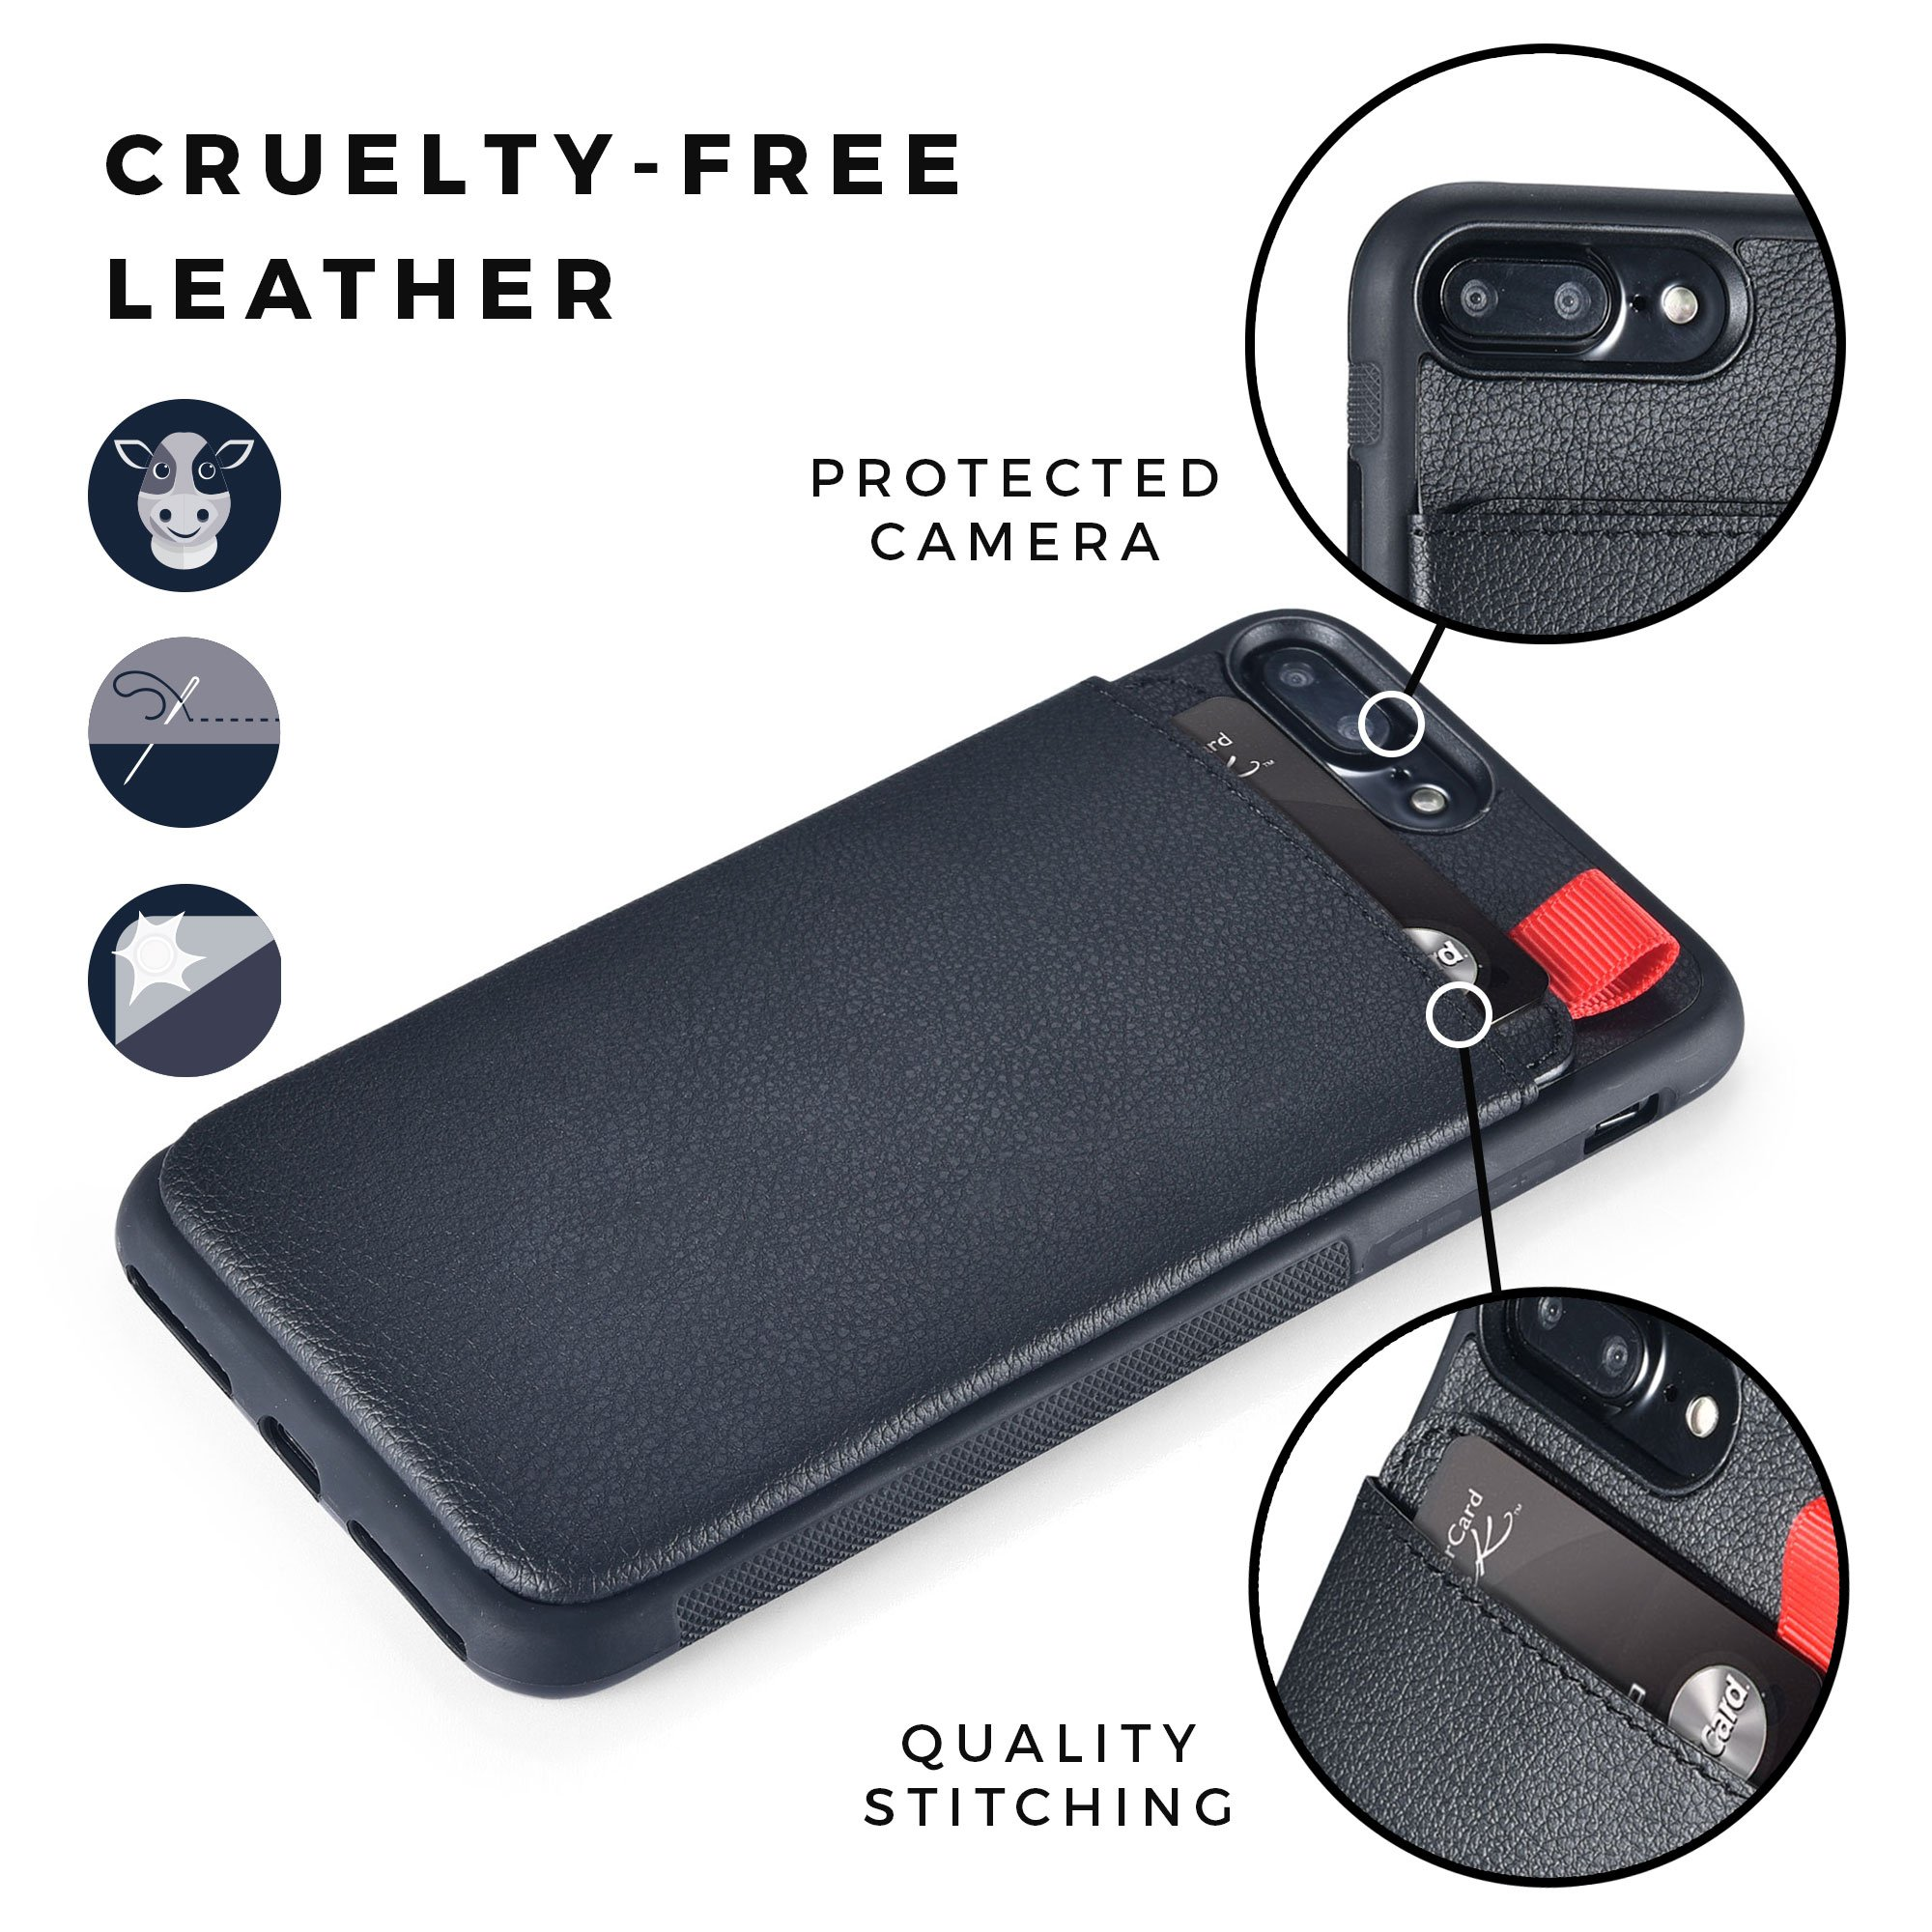 MANGATA TRITON Leather Wallet case compatible with iPhone 8 Plus, iPhone 7 Plus | Hidden Wallet Pocket, Rugged Shell | Cruelty Free Leather | Credit Card Holder, Cash Pocket, Screen Protector (Black) by Mangata Cases (Image #3)